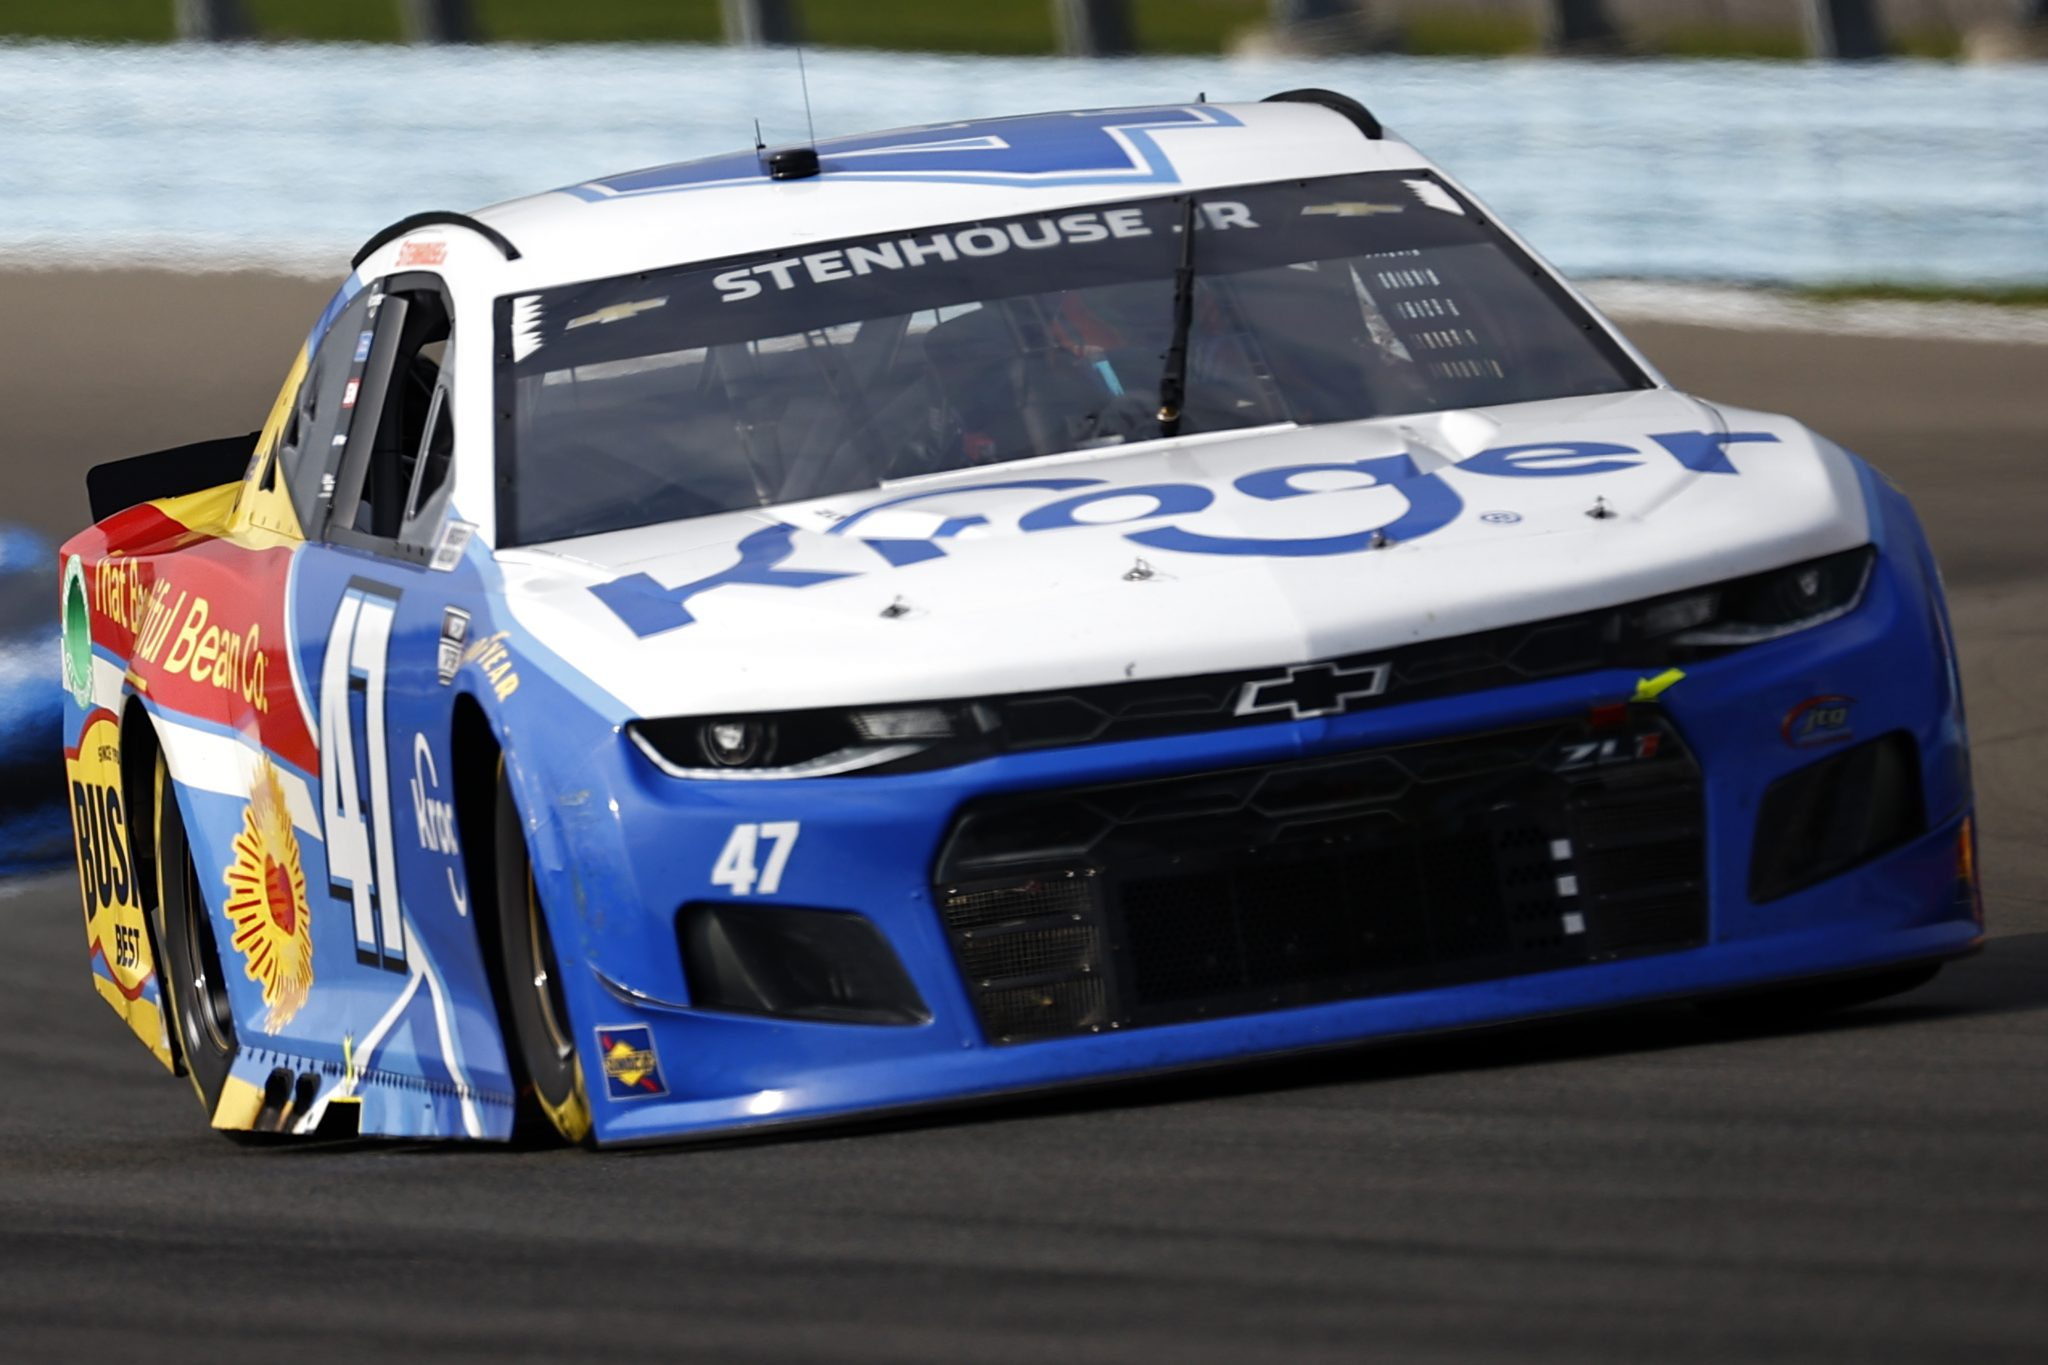 WATKINS GLEN, NEW YORK - AUGUST 08: Ricky Stenhouse Jr., driver of the #47 Kroger/Bush's Beans Chevrolet, drives during the NASCAR Cup Series Go Bowling at The Glen at Watkins Glen International on August 08, 2021 in Watkins Glen, New York. (Photo by Jared C. Tilton/Getty Images)   Getty Images